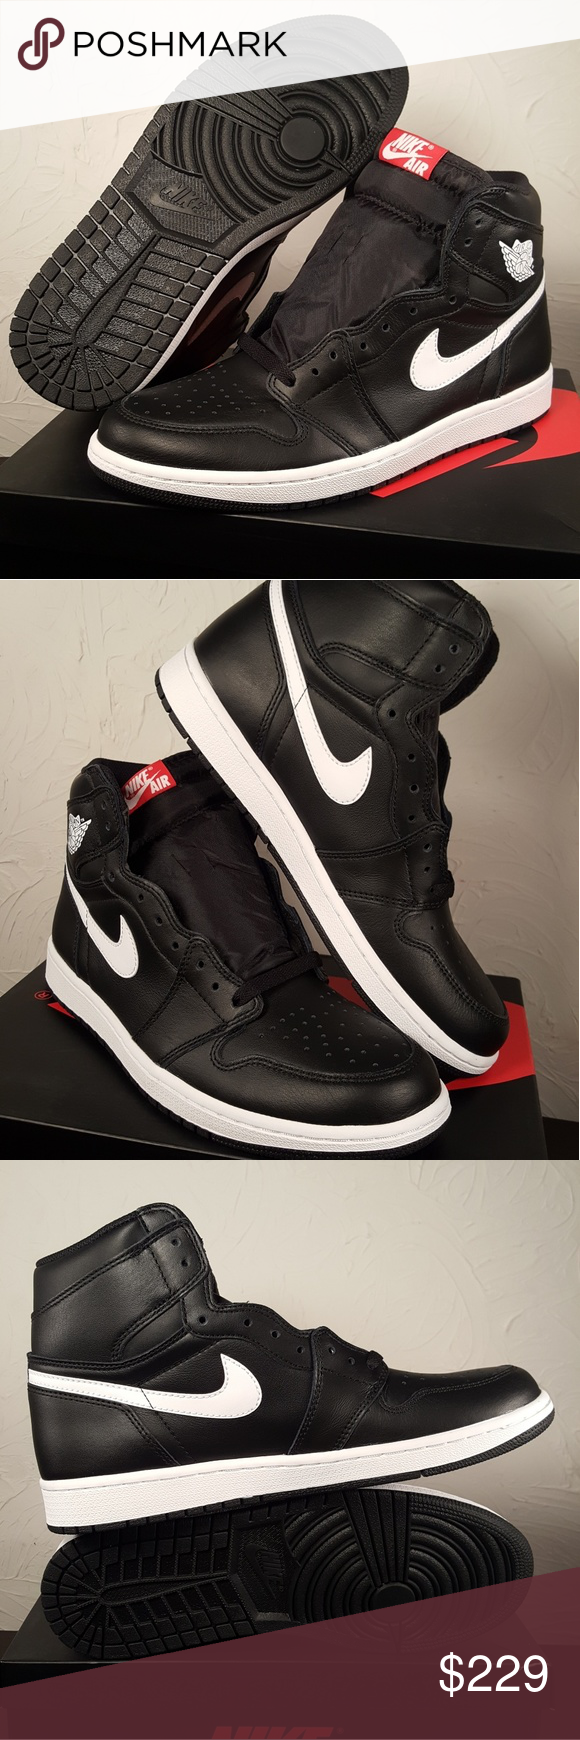 38c7c69a101a AIR JORDAN 1 HIGH RETRO HIGH OG  YIN YANG  SIZE 9 BRAND NEW WITH